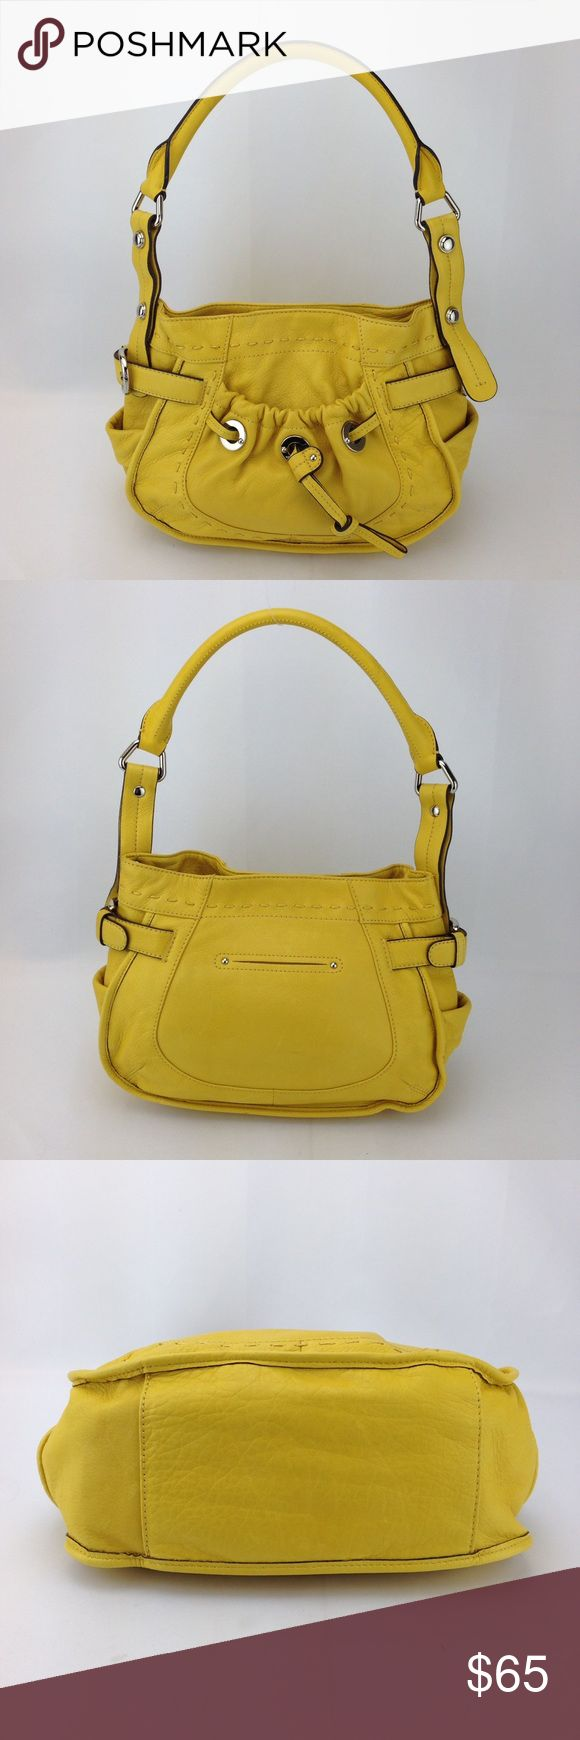 "B. Makowsky Yellow Pebble Leather Shoulder Bag B. Makowsky Yellow Pebbled Leather Shoulder Bag in great condition! 100% authentic.   Exterior features: - yellow pebble leather with tonal stitching - front elastic pocket with drawstring embellishment beneath - belted embellishment on sides - flat slit open pockets on sides - single rolled shoulder strap with 8"" drop - magnetic closure on top  Interior features: - dark leopard polyester lining - zippered pocket on one wall with leather trim…"